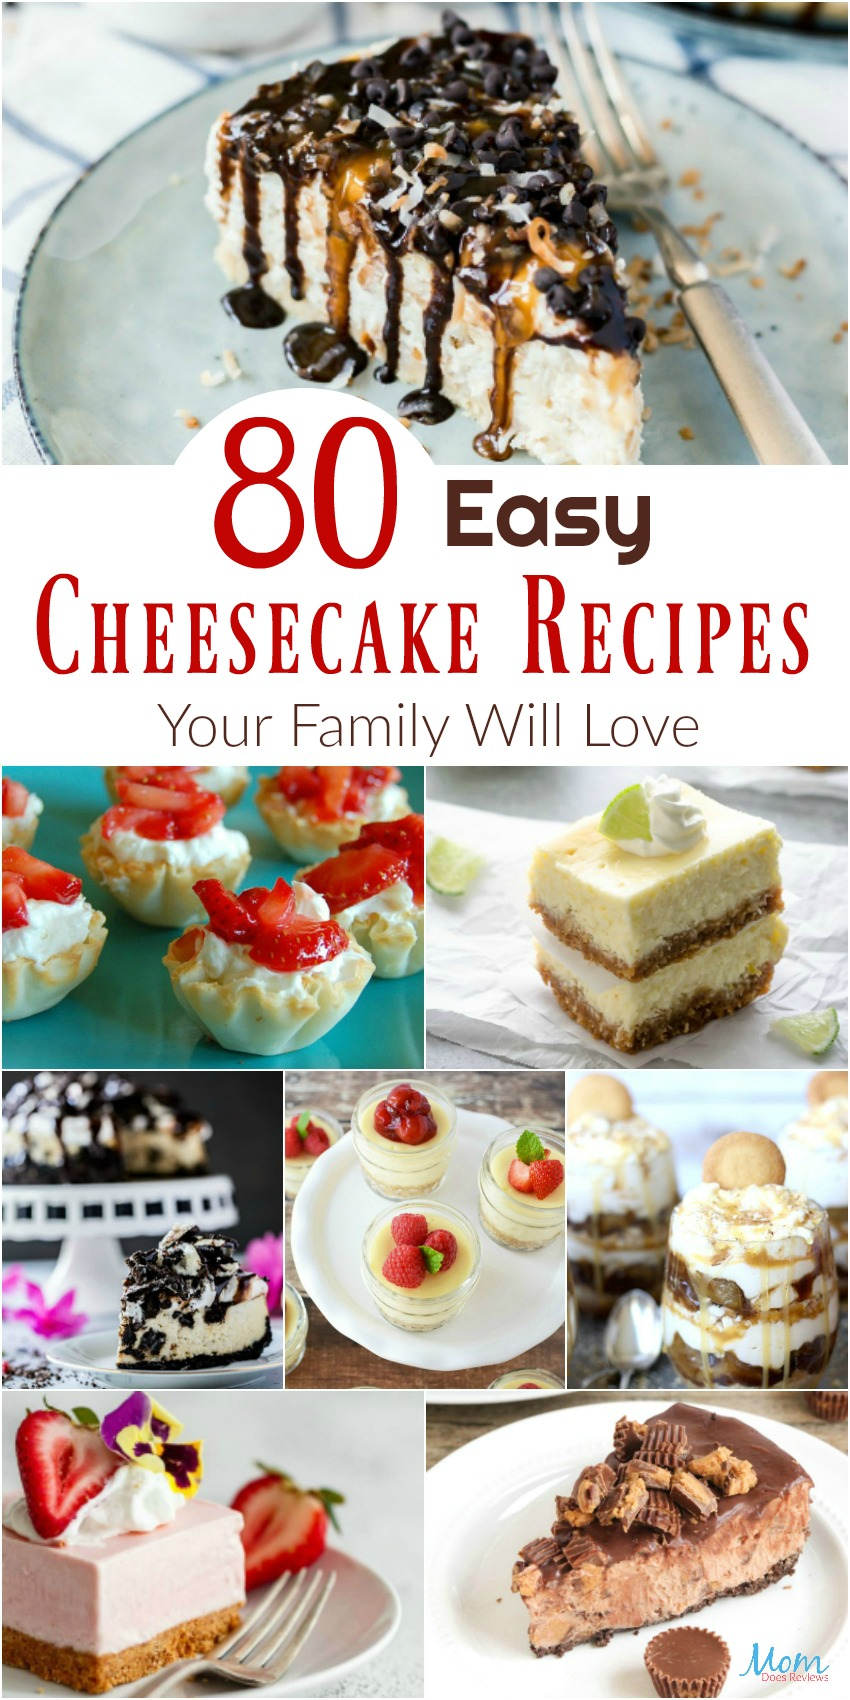 80 Easy Cheesecake Recipes Your Family Will Love